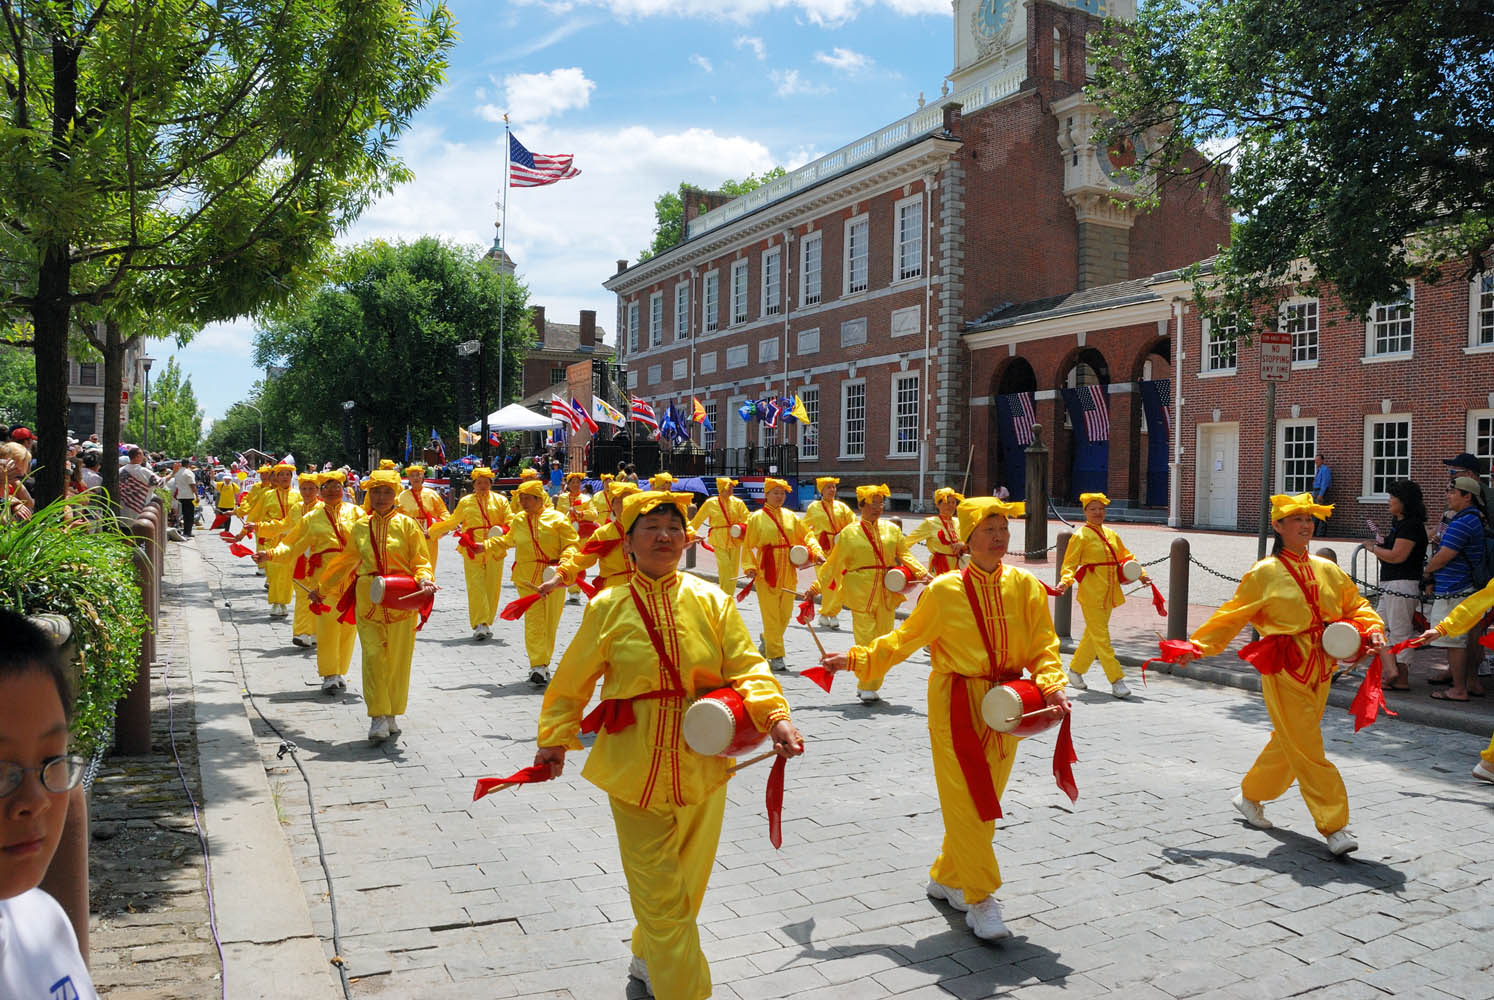 The Falun Dafa Waist Drum Team participates in the celebration of the 233th birthday of the America. The members march in front of Independence Hall.